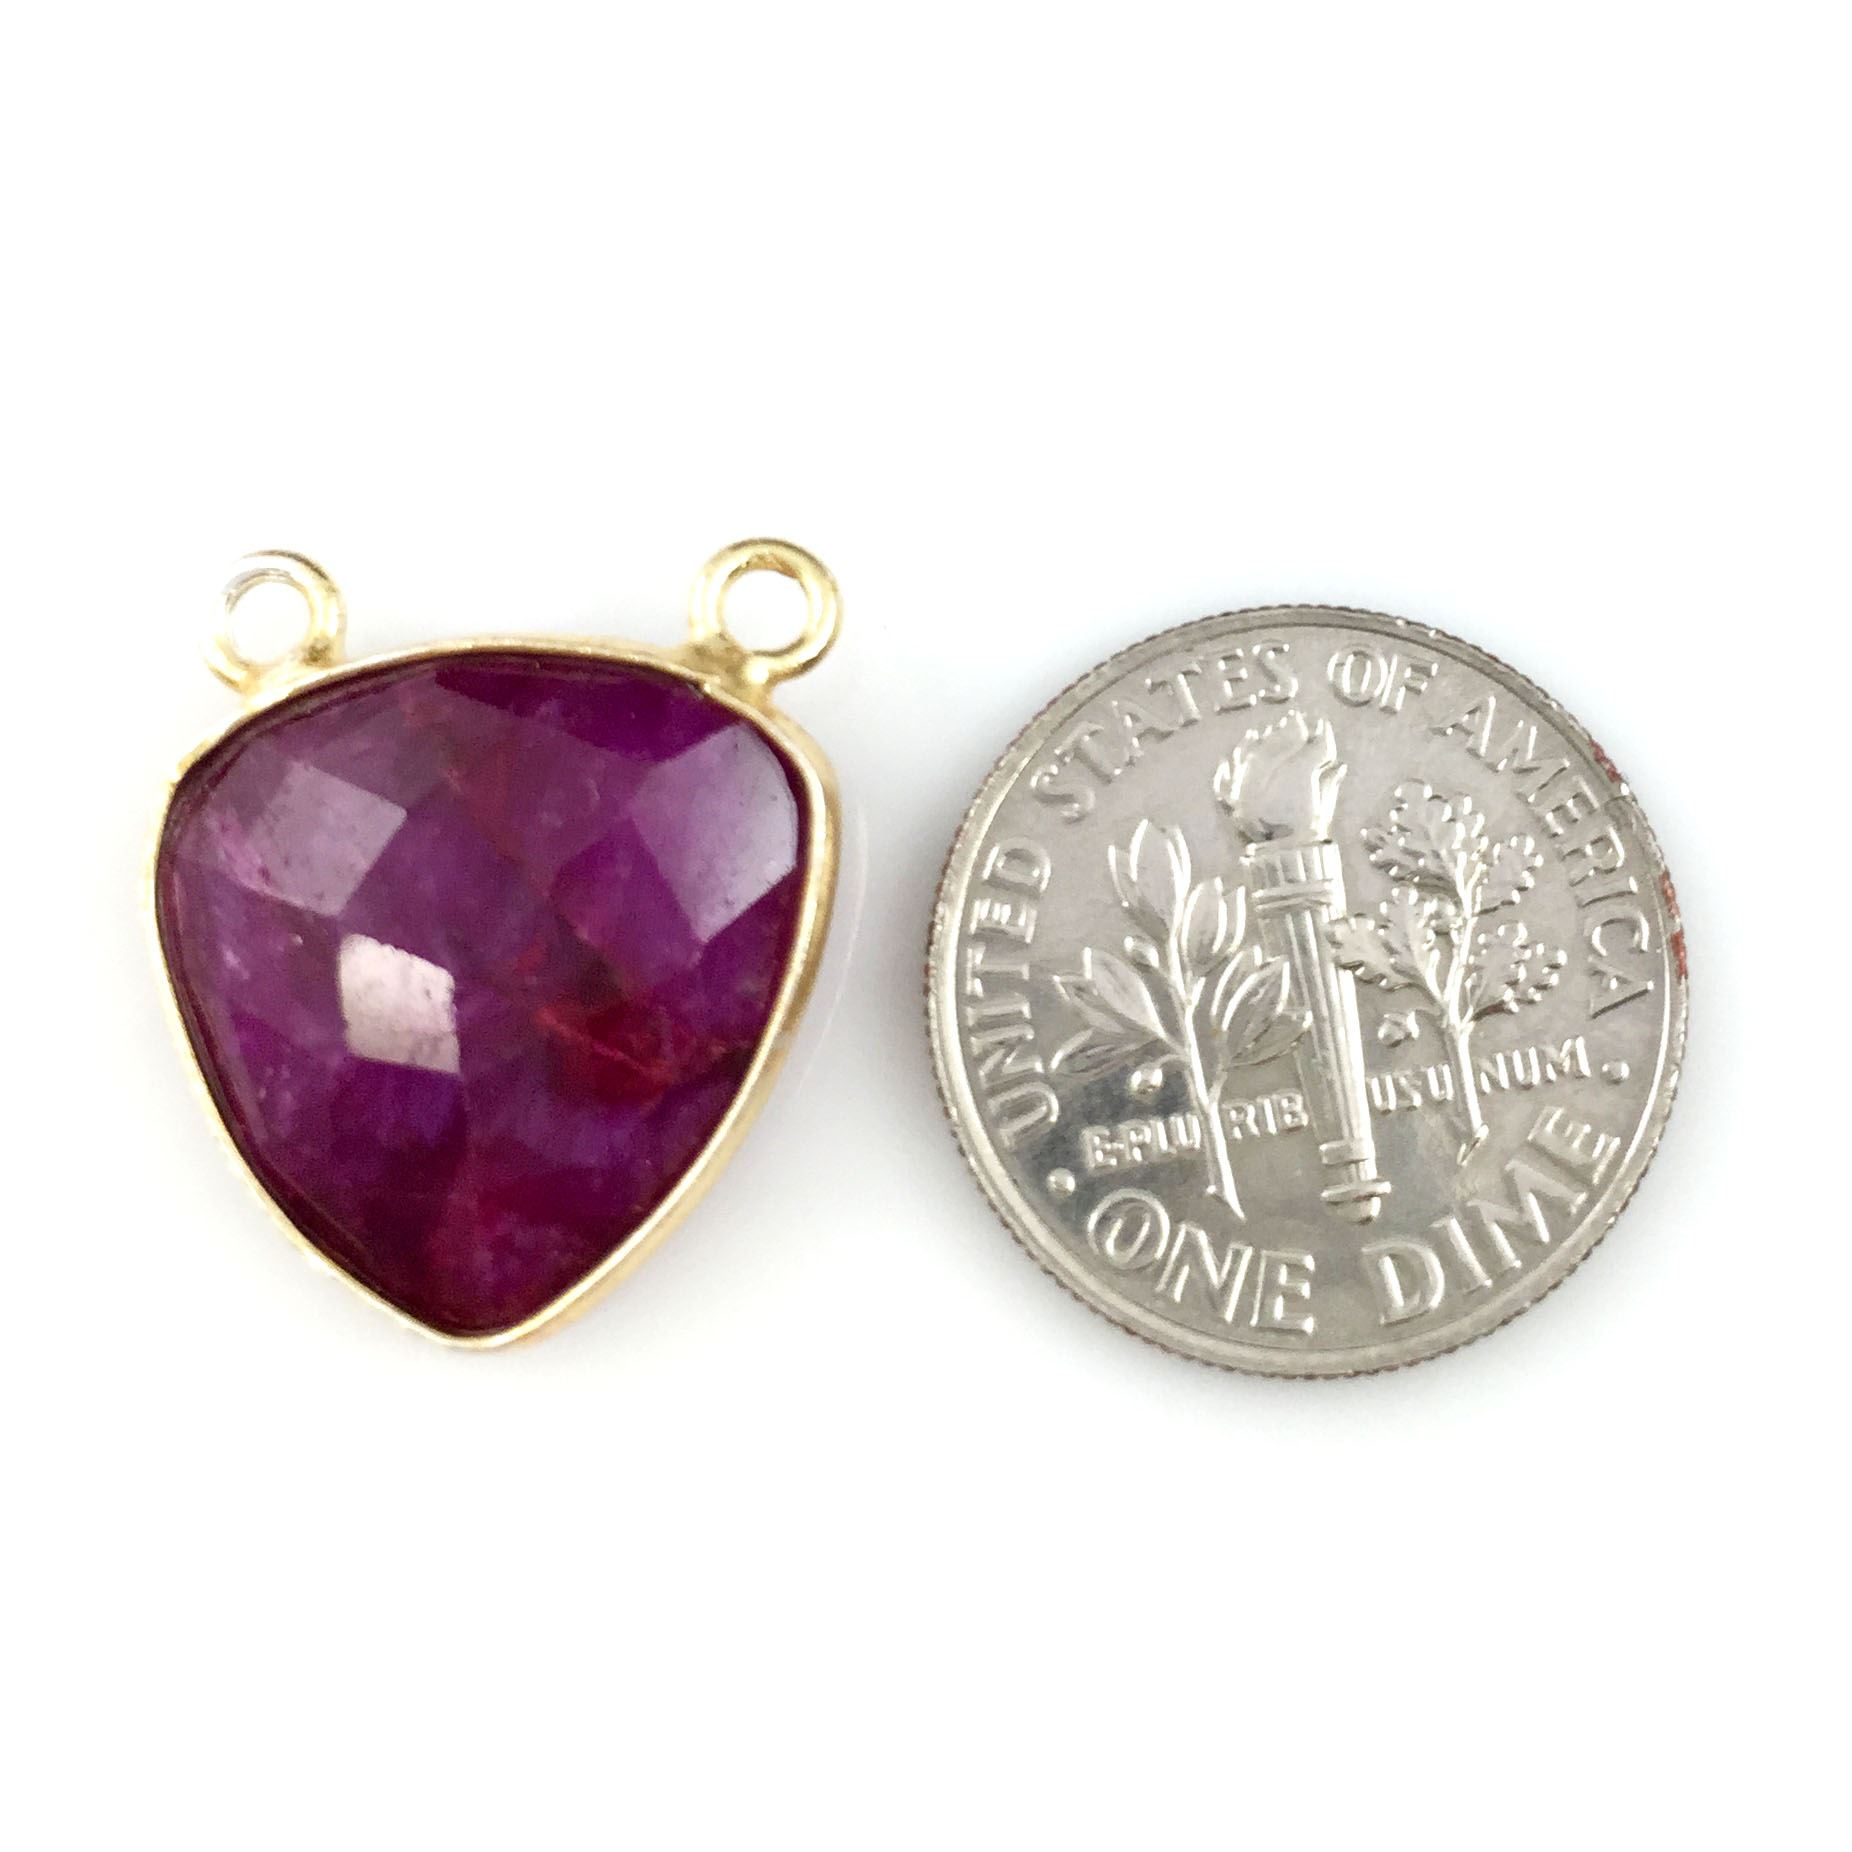 Bezel Gemstone Connector Pendant - Ruby Dyed - Gold plated Sterling Silver - Small Trillion Shaped Faceted - 15mm - 1 piece